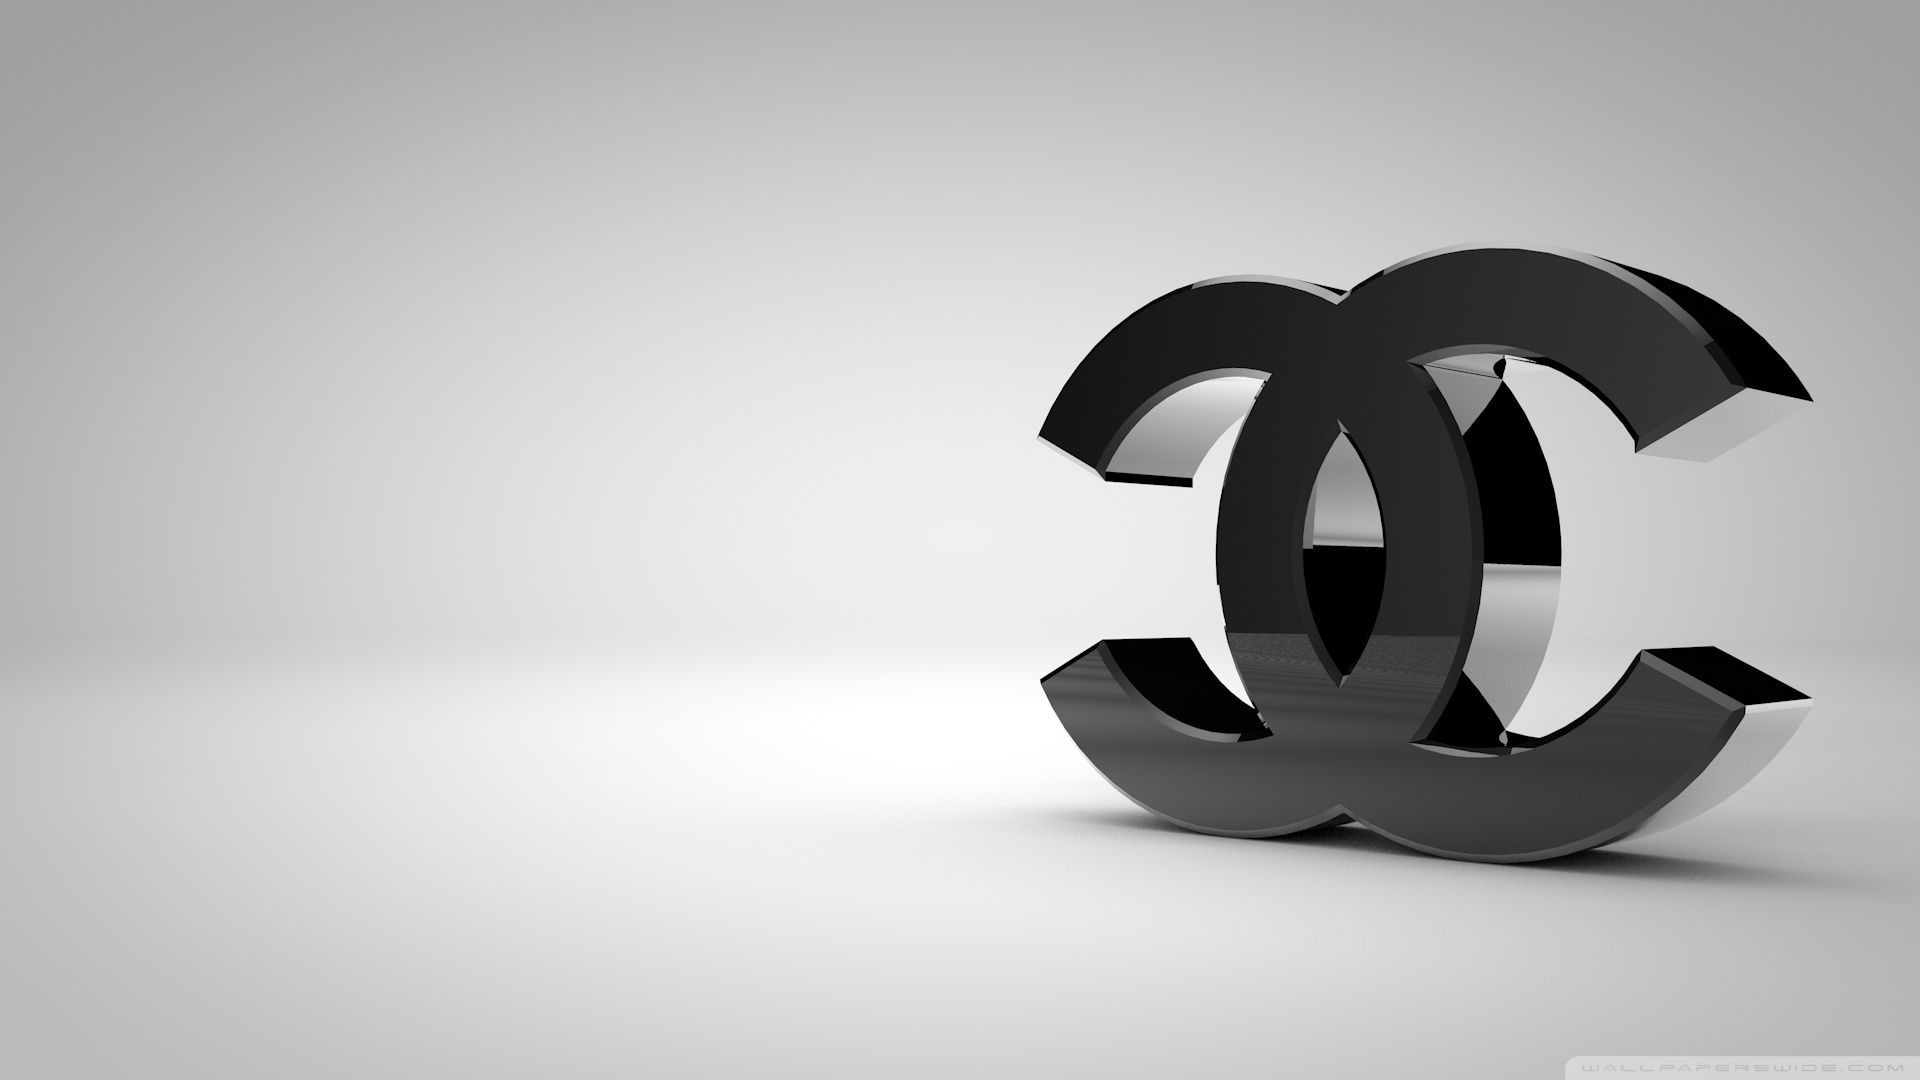 Coco Chanel Logo Wallpaper 61 images